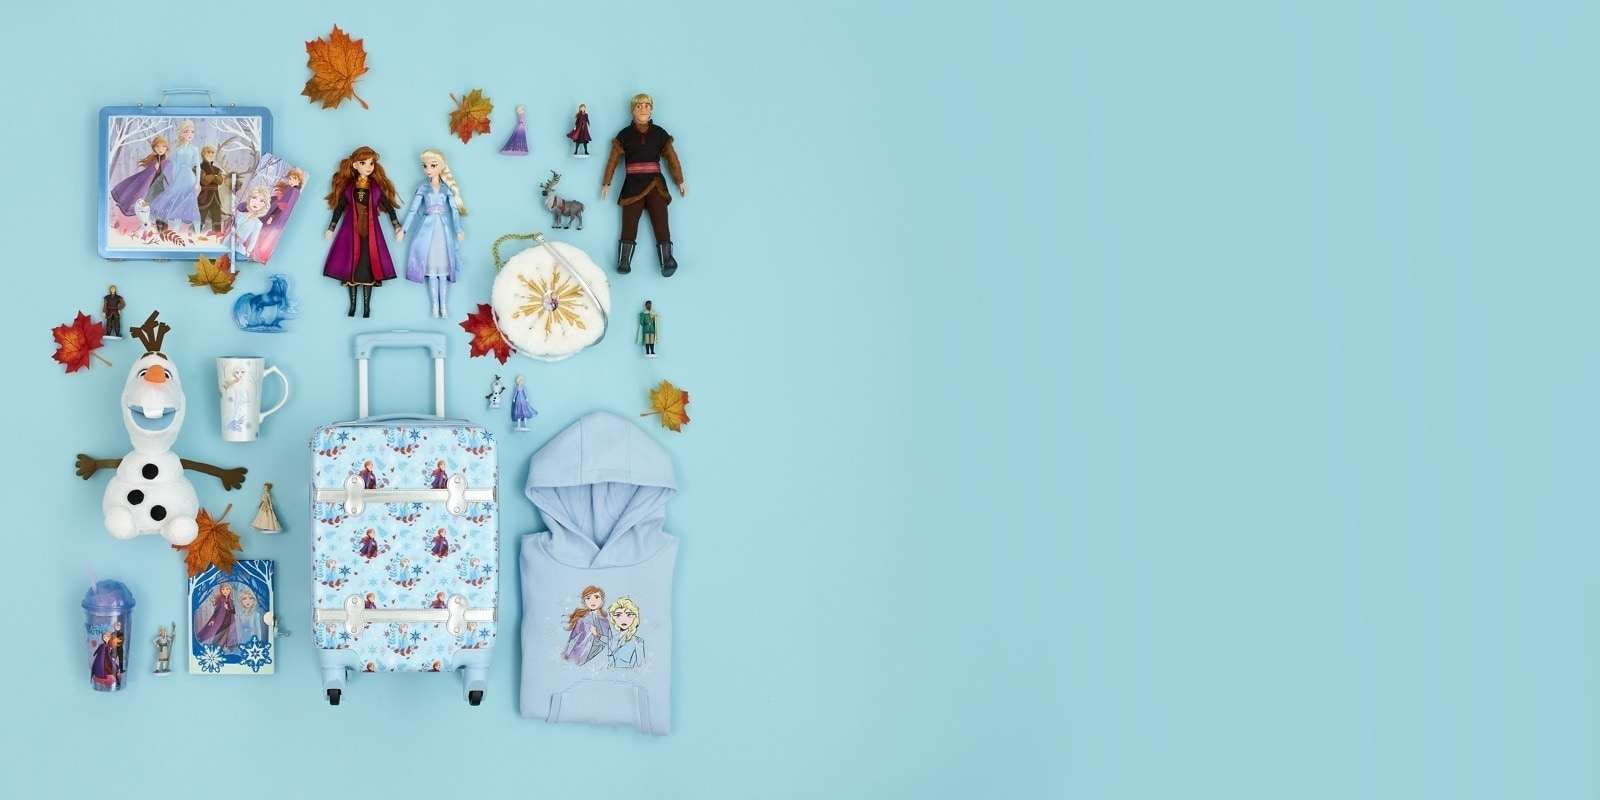 A selection of Frozen 2 figures including, Elsa, Anna, Sven and Olaf